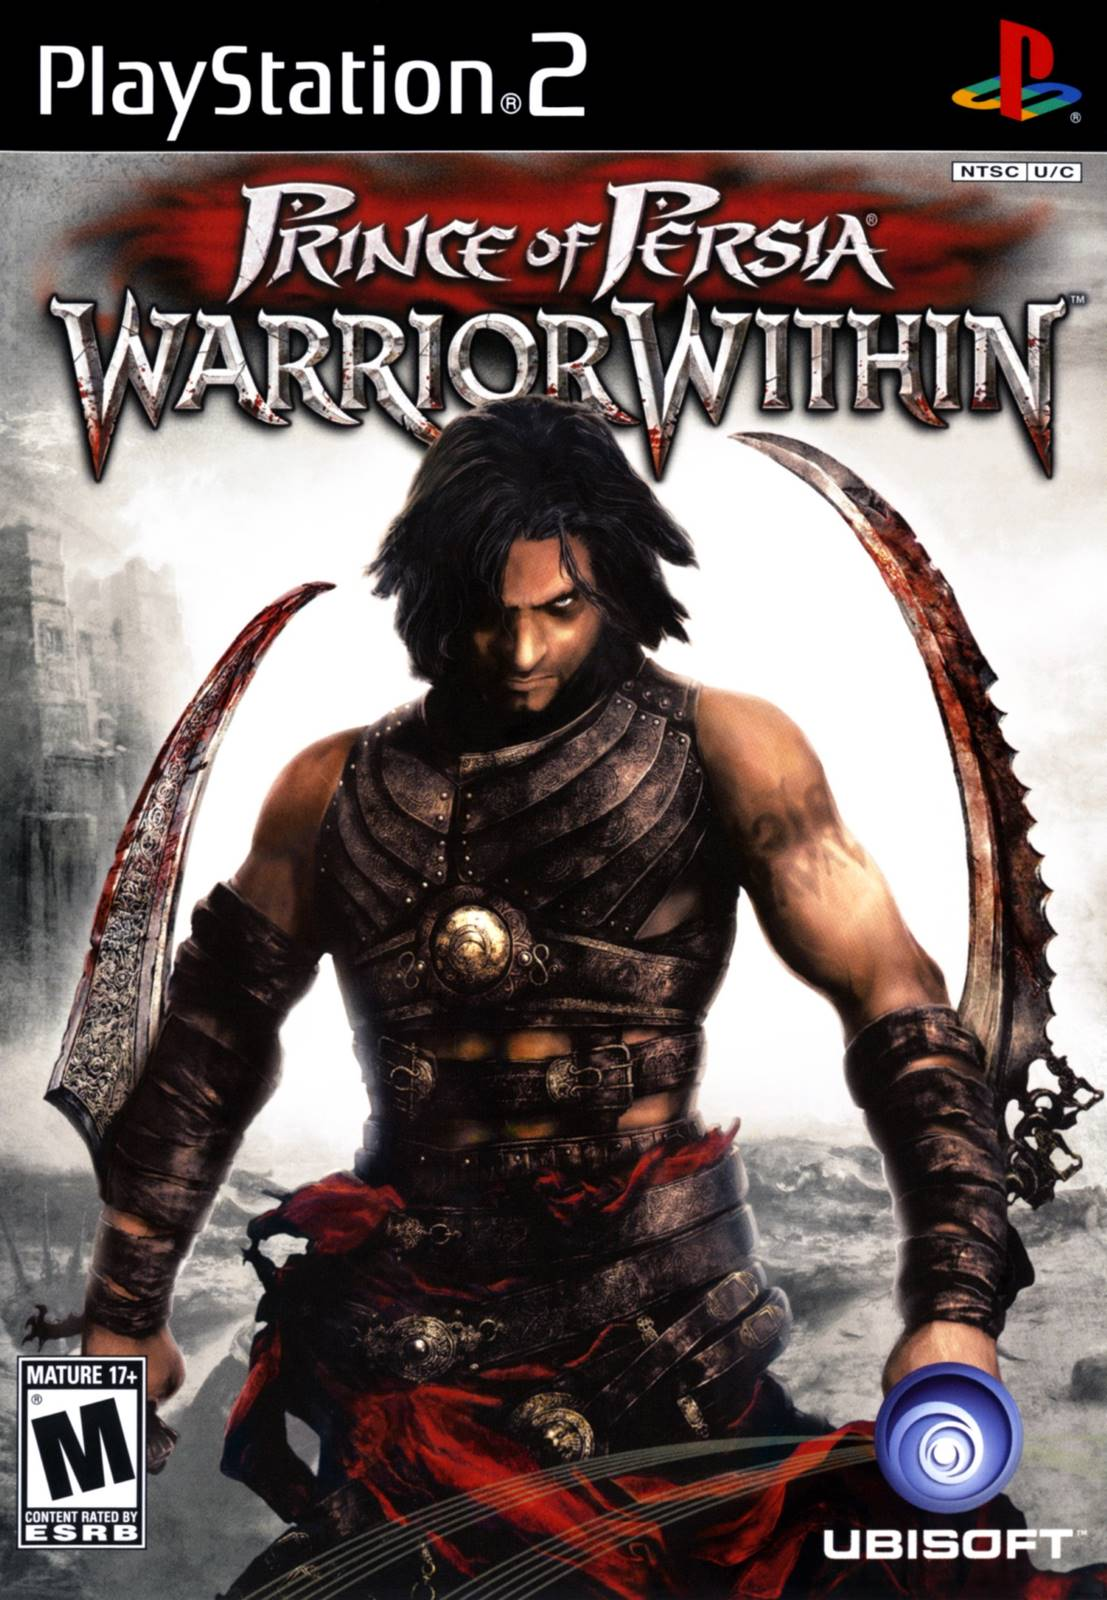 Prince of Persia Warrior Within Sony Playstation 2 Game